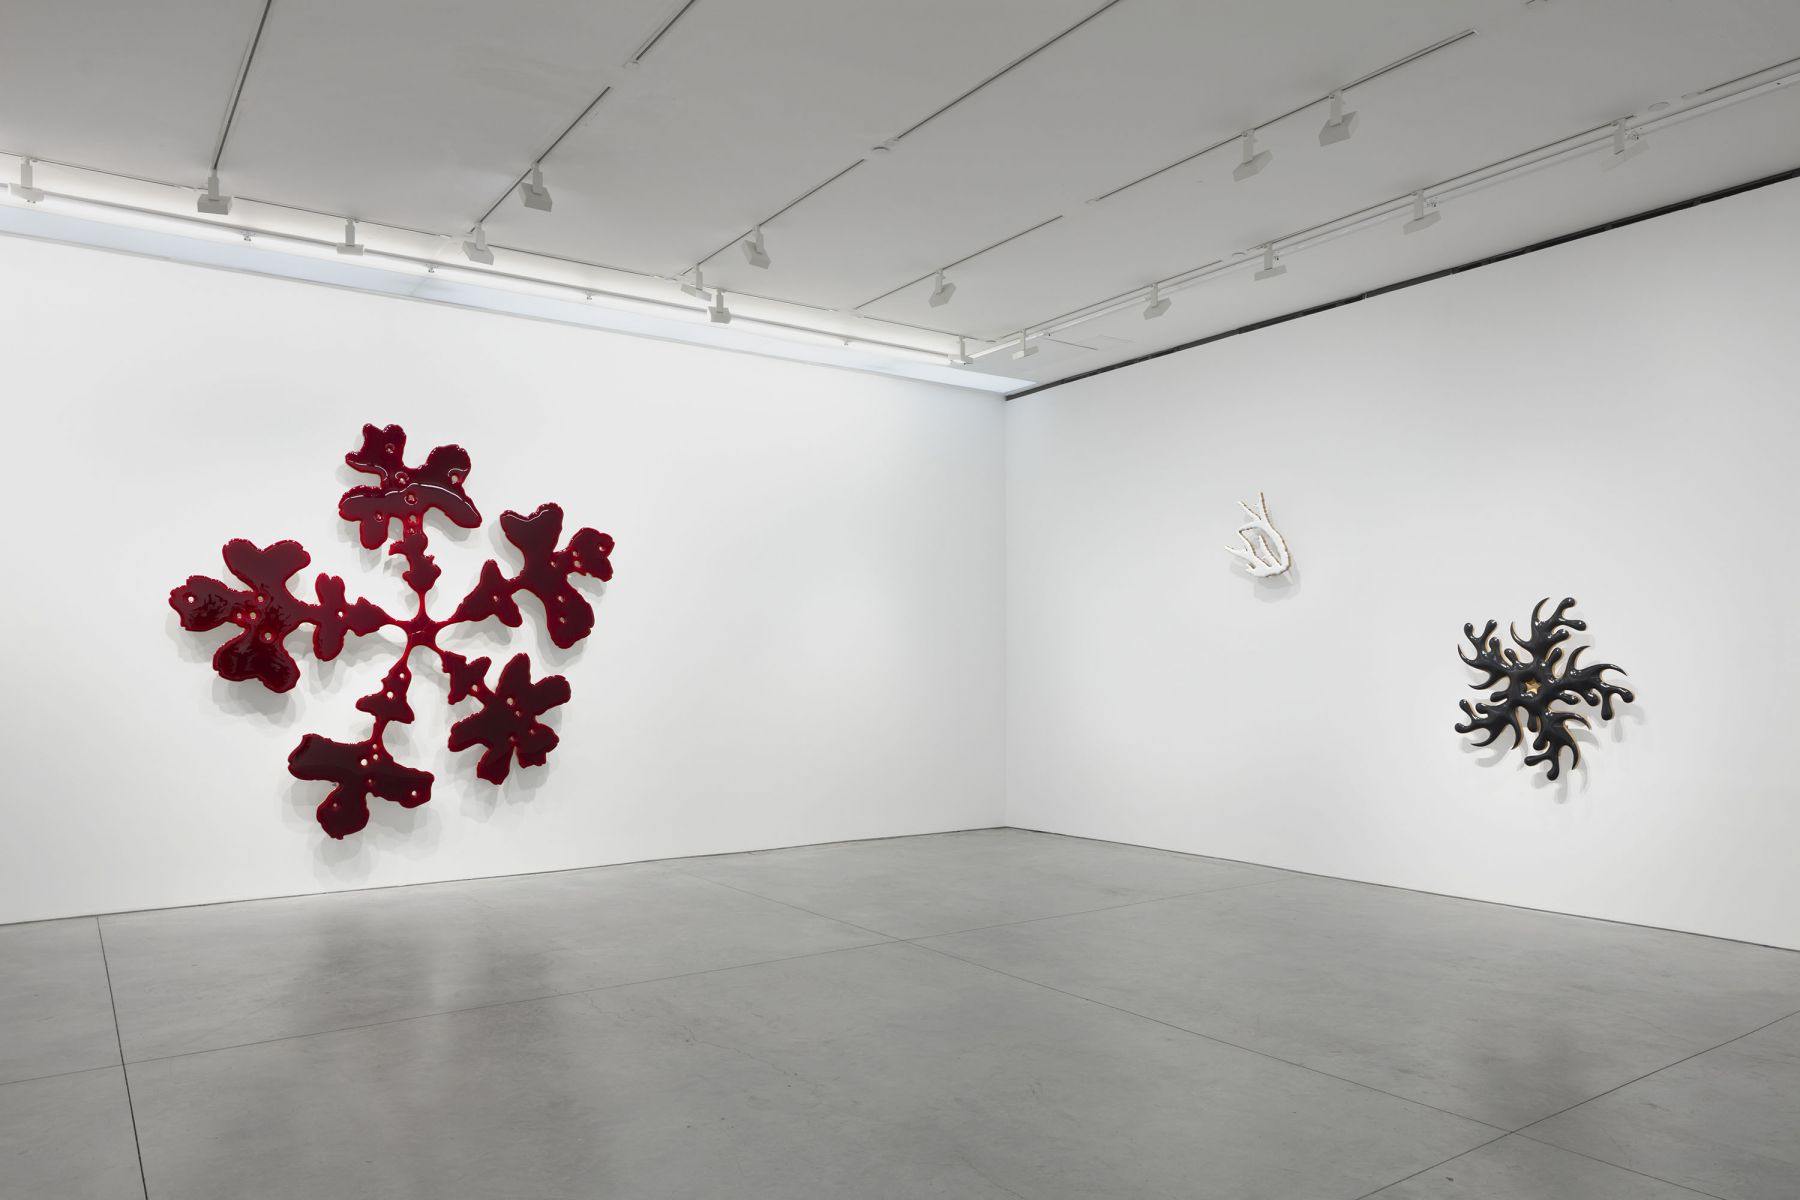 ILL (nature paintings) (Installation View), Marianne Boesky Gallery, 2019